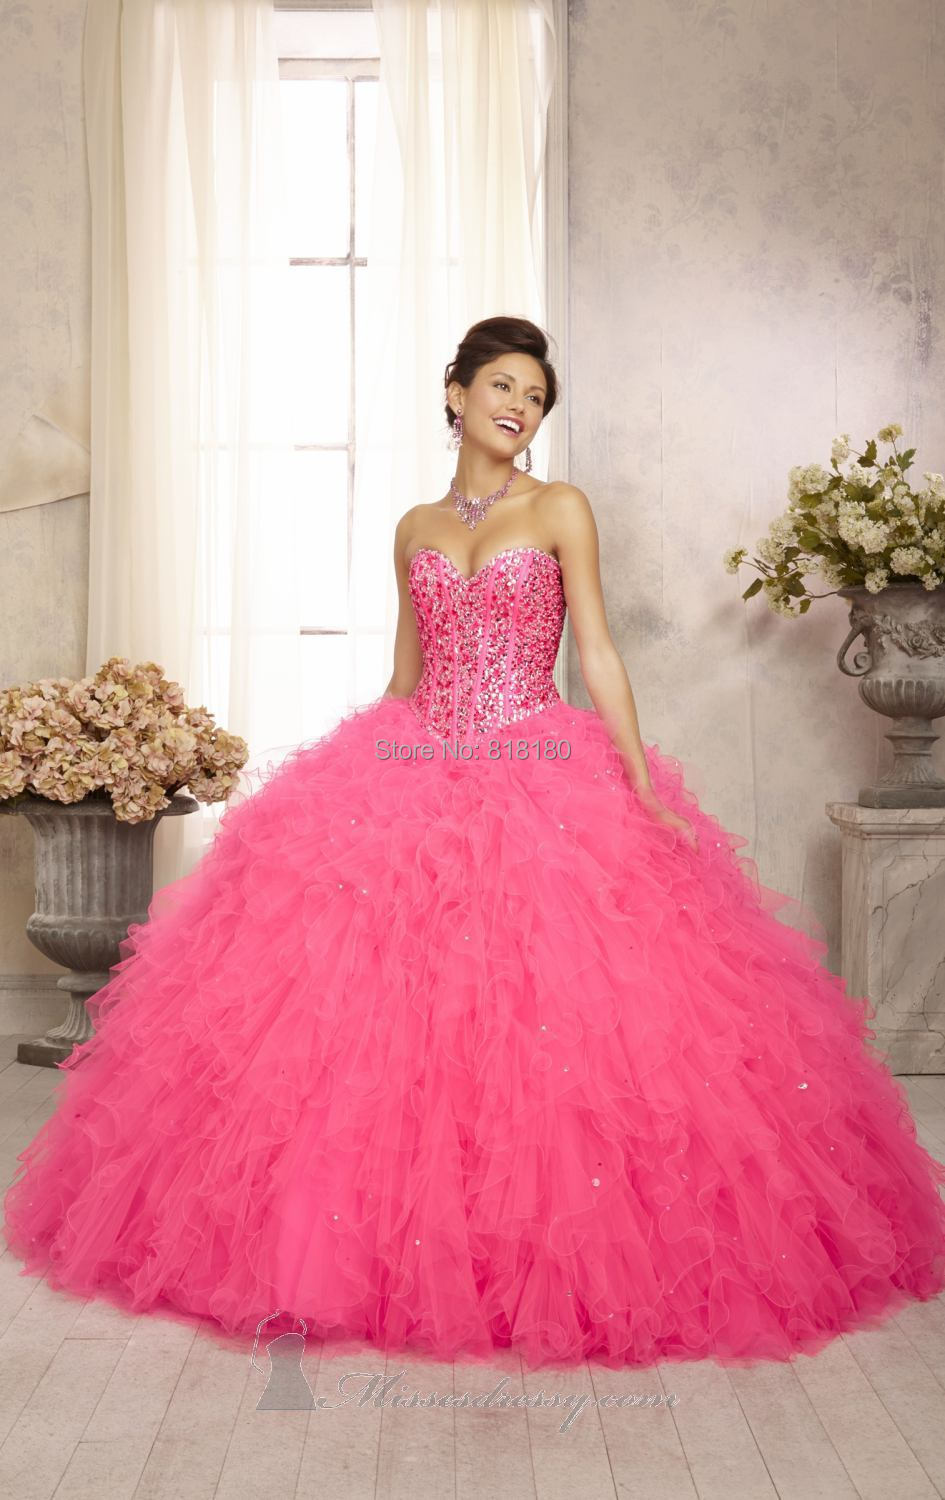 Quinceanera Dresses Pink And White Puffy Pink Puffy Quin...